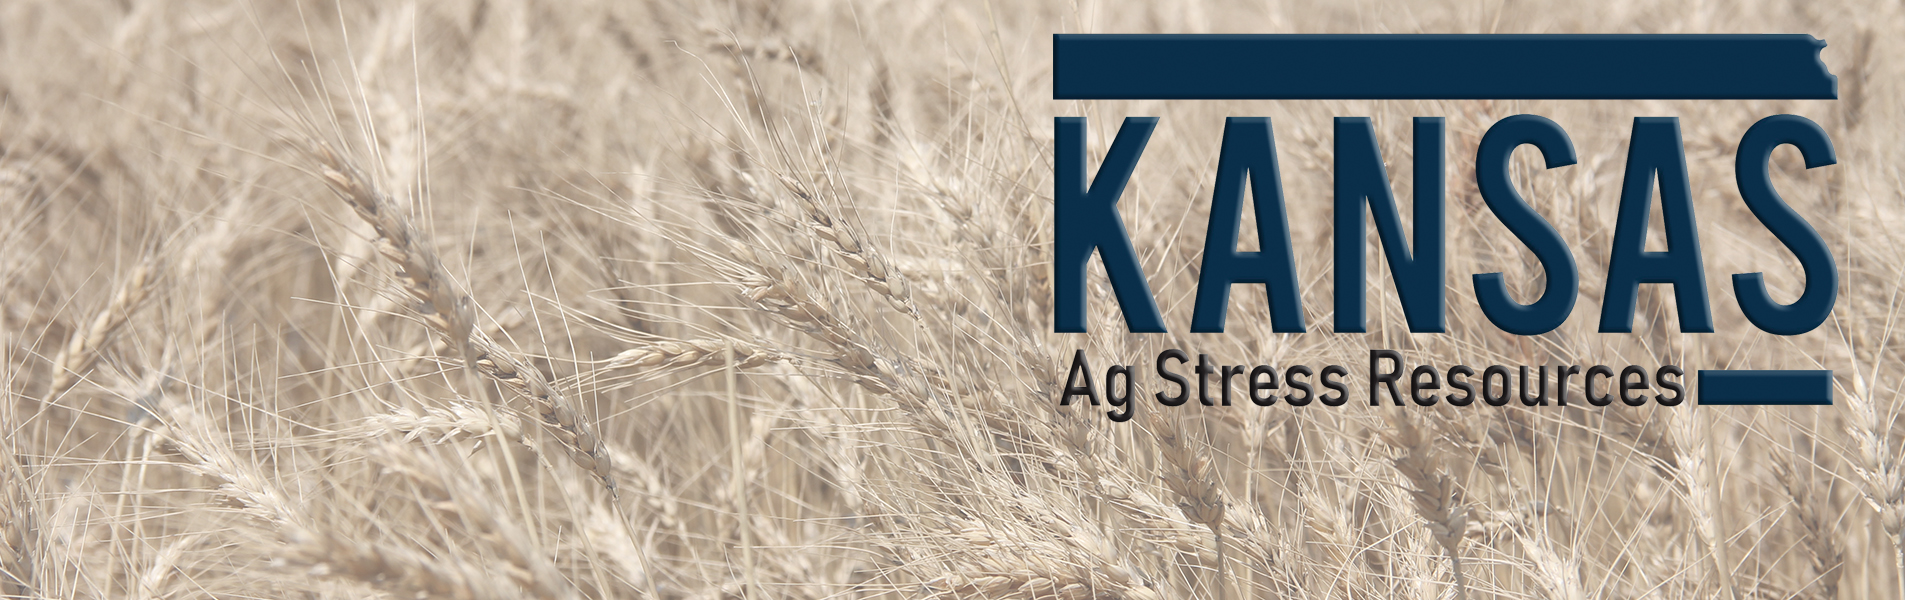 New Website to Assist Kansans Coping with Ag-Related Stress